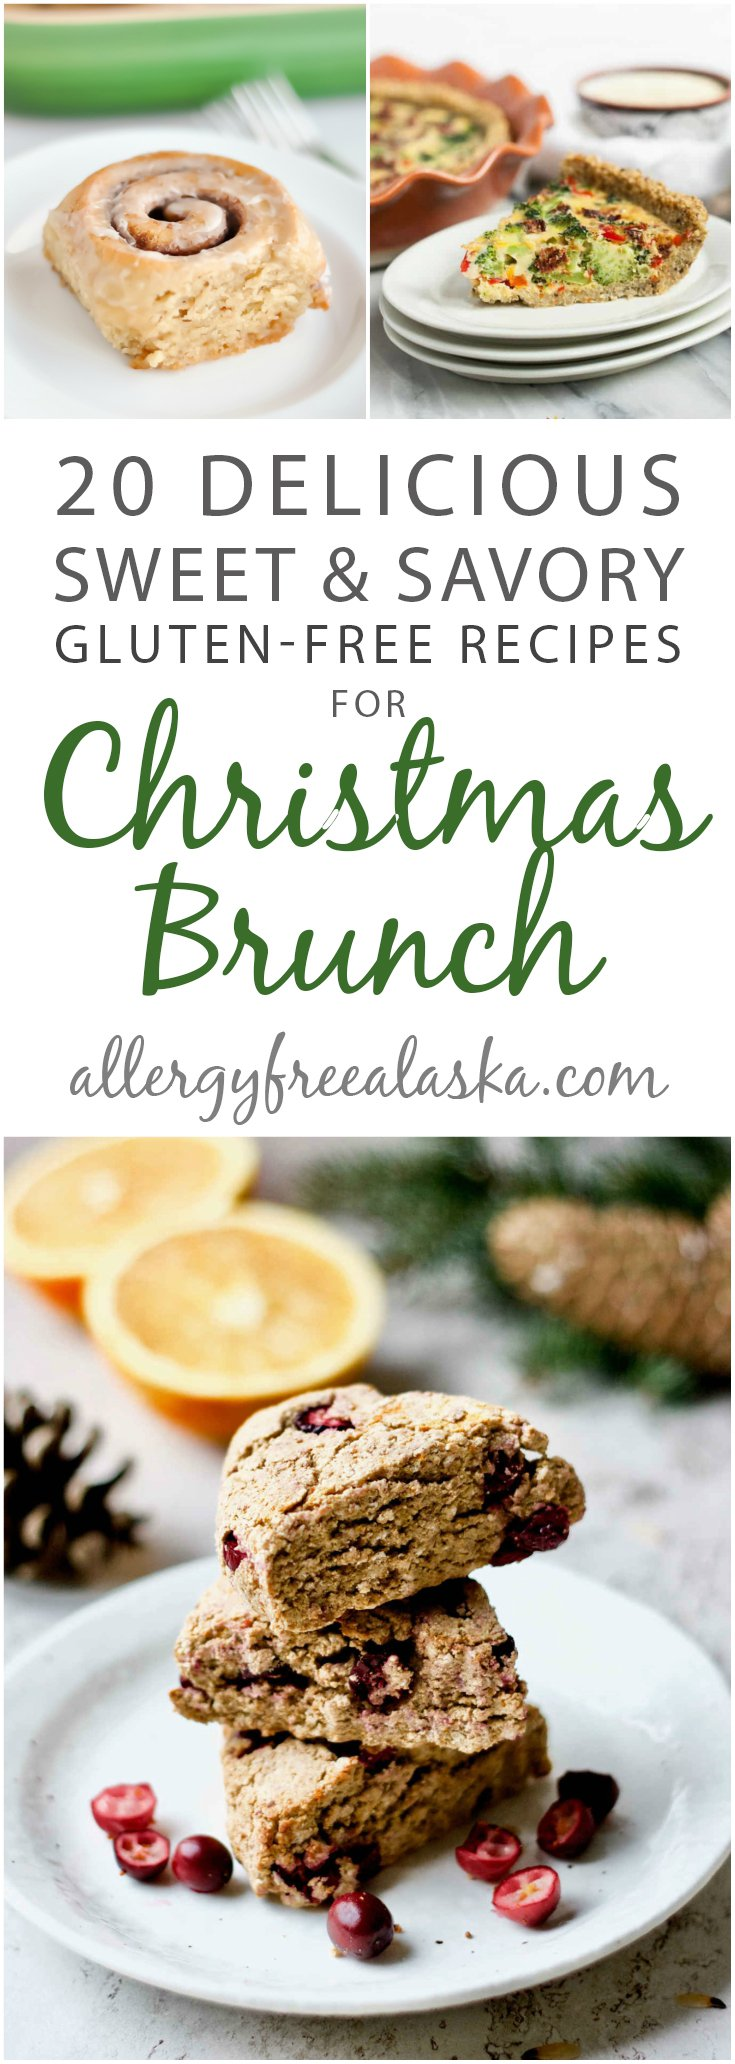 Need a delicious breakfast to go with your holiday plans? Check out these 20 gluten-free Christmas brunch recipes! There's dairy-free and vegan options, too! #glutenfree #dairyfree #christmas #brunch #breakfast #holiday #vegan #paleo